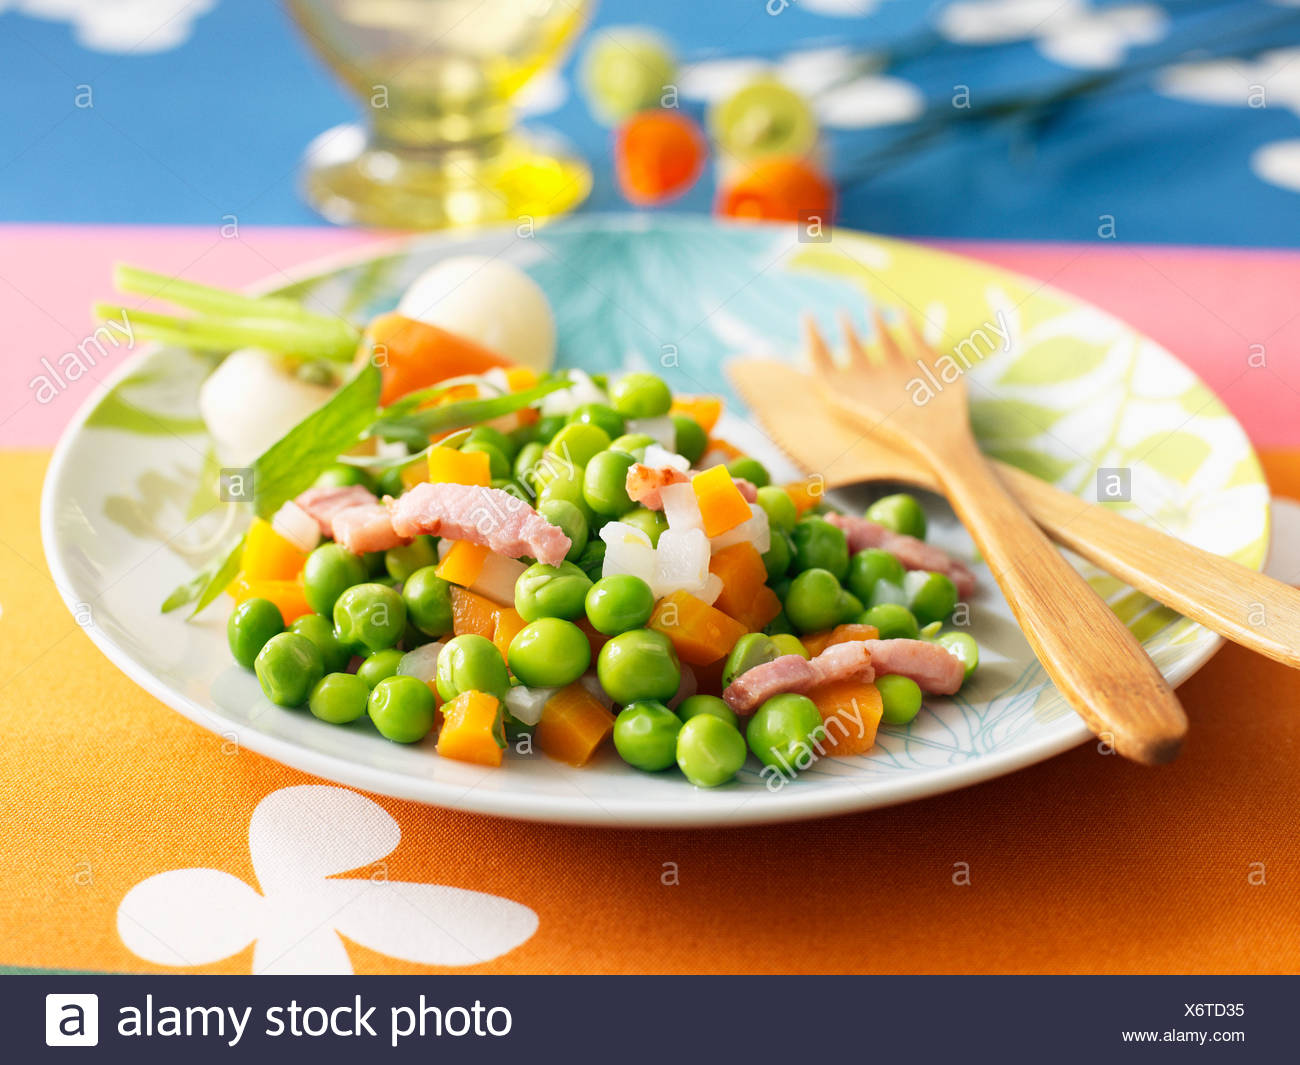 Peas and carrots with diced bacon - Stock Image